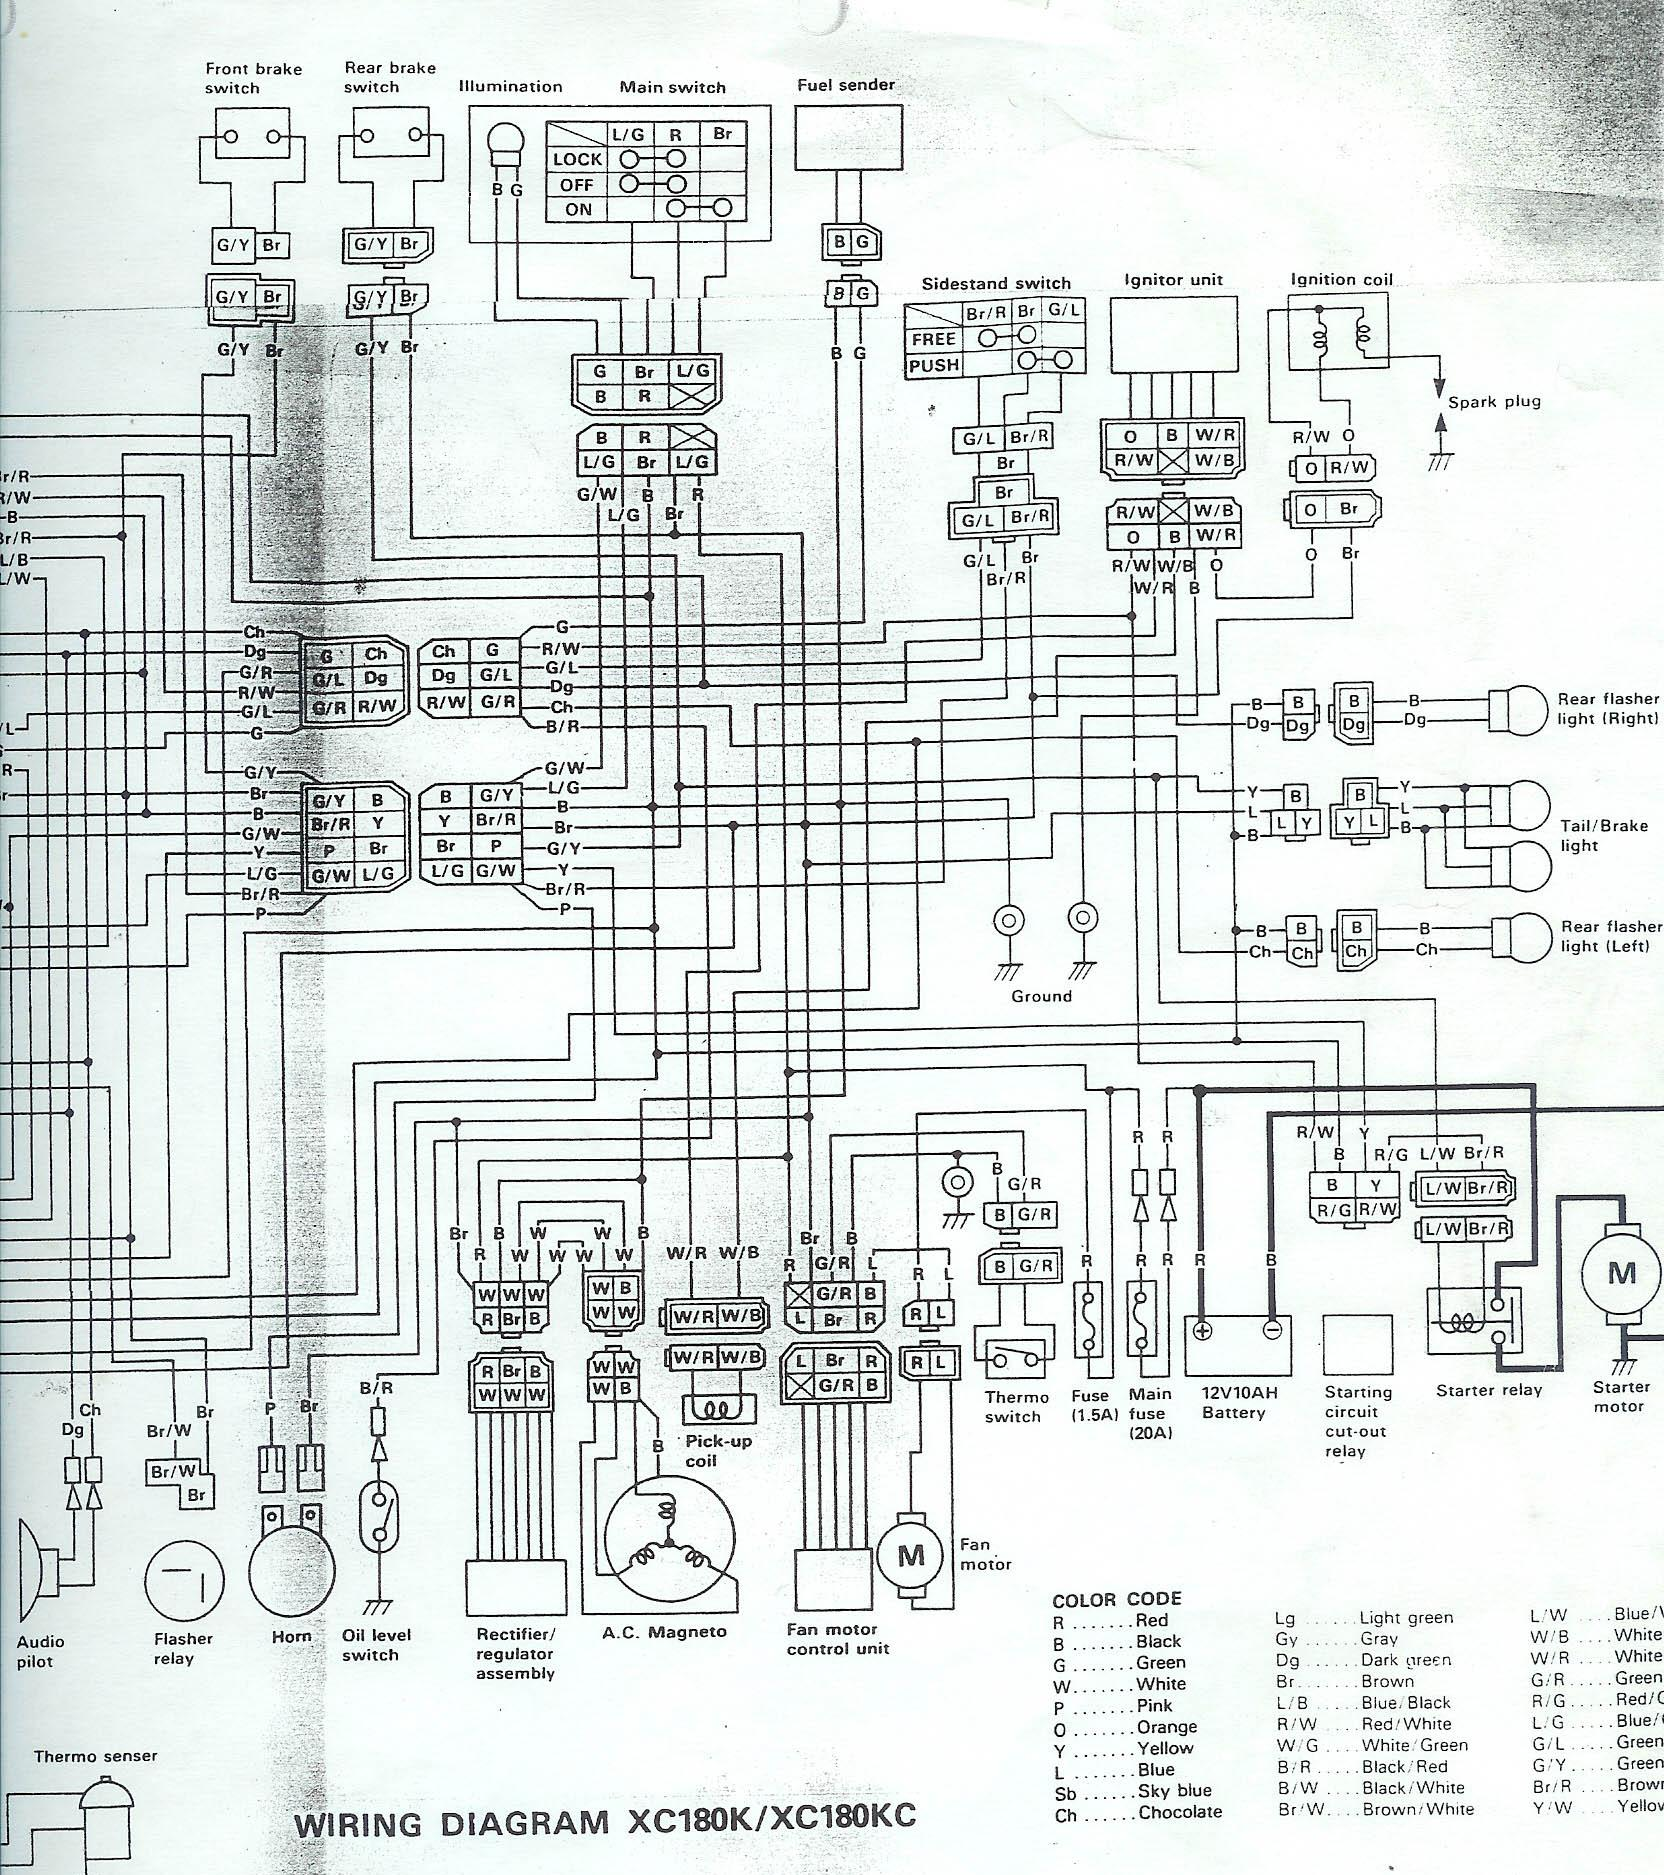 XC180_wiring_diagram_2?resize\=665%2C749 ditra heat 240v wiring diagram wire diagram, gfci outlet wb wiring diagram at crackthecode.co